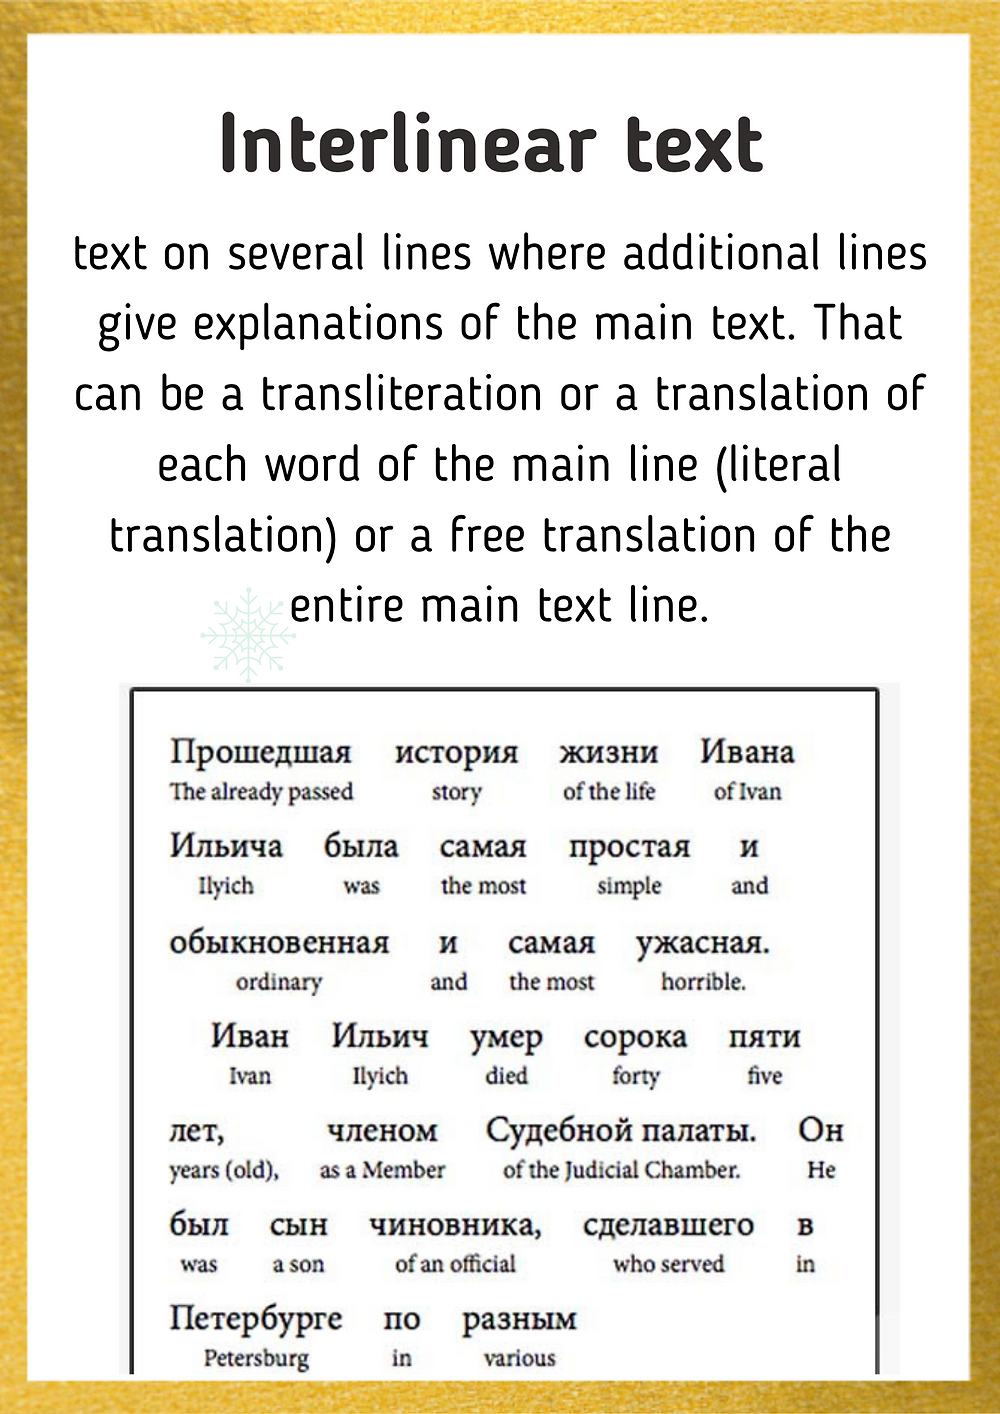 Interlinear text - method to learn a language